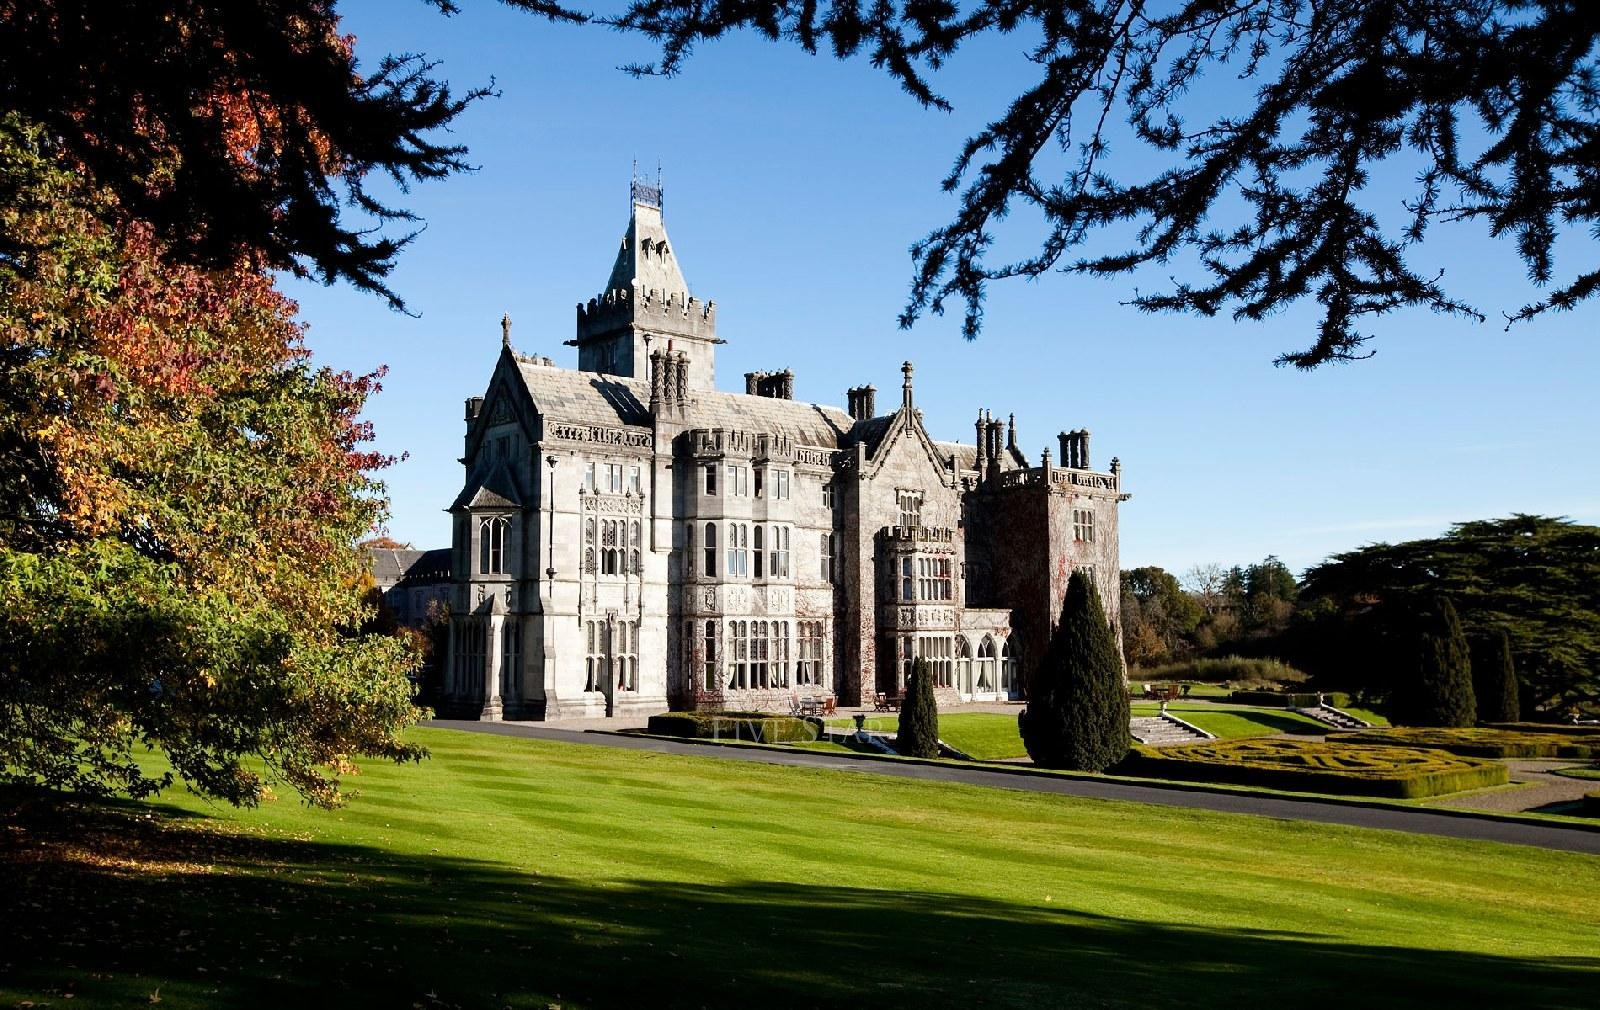 Adare Manor Villas >> Adare Manor Villas | 5-Star Self-Catering Adare - Fivestar.ie